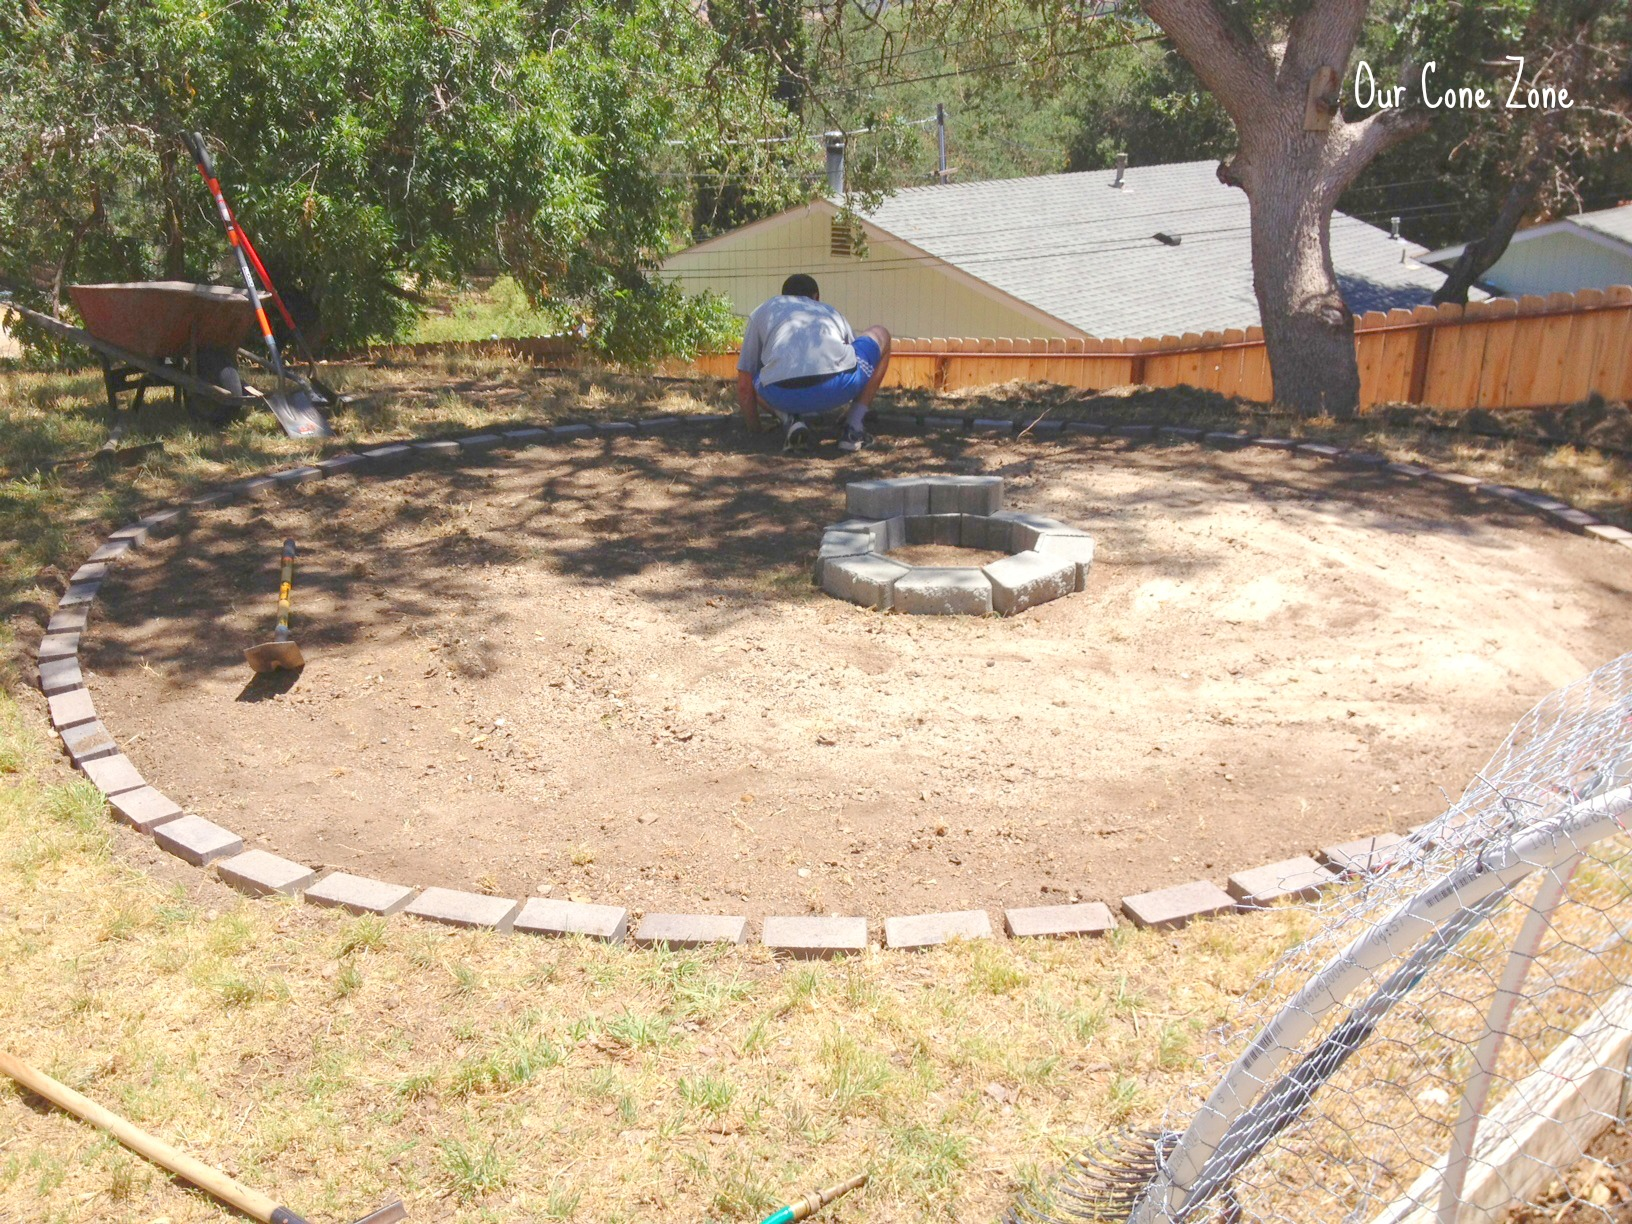 Making a fire pit laying bricks